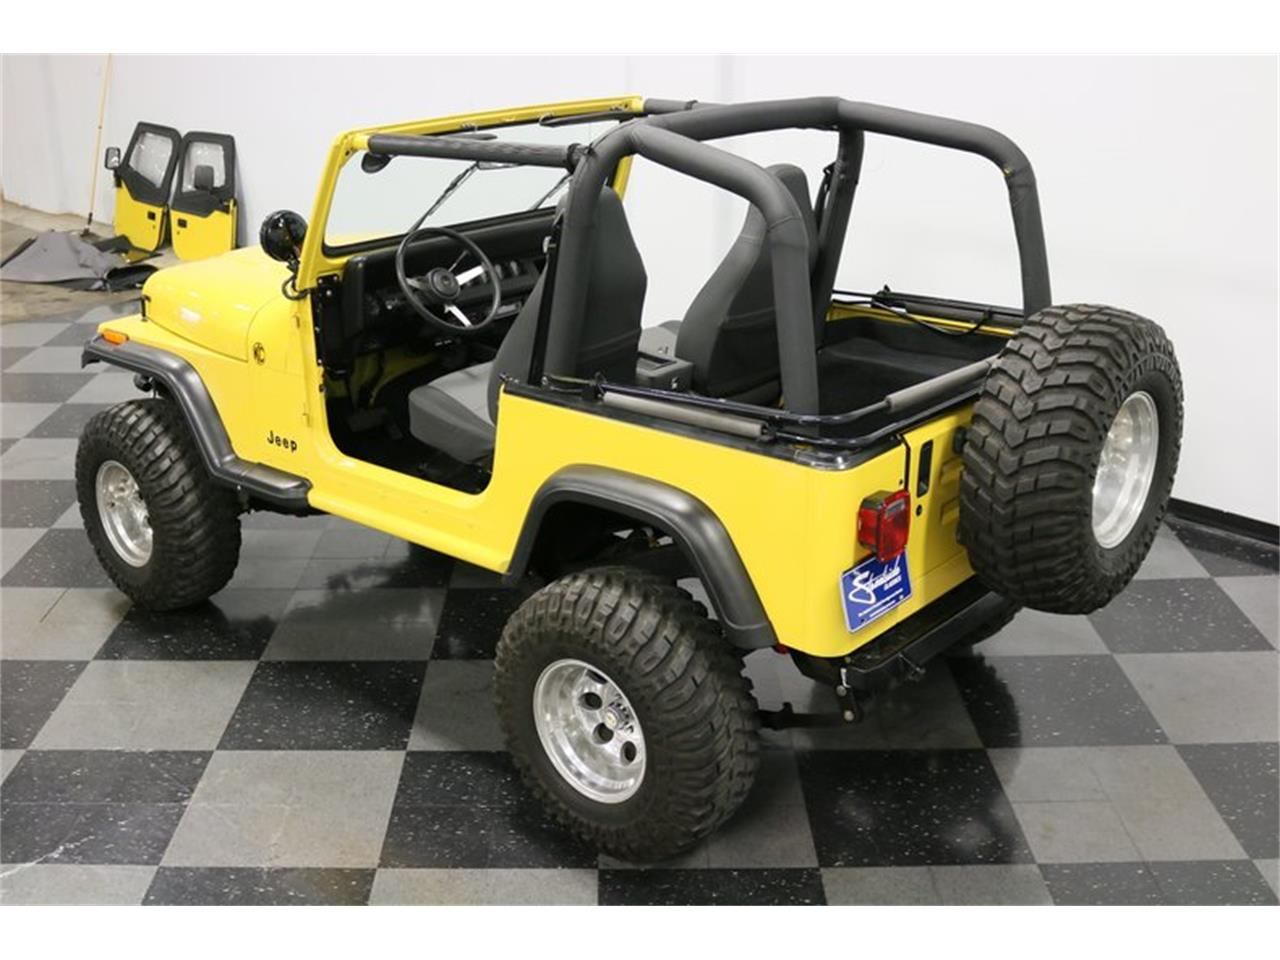 Large Picture of '93 Jeep Wrangler located in Ft Worth Texas - $25,995.00 - P701